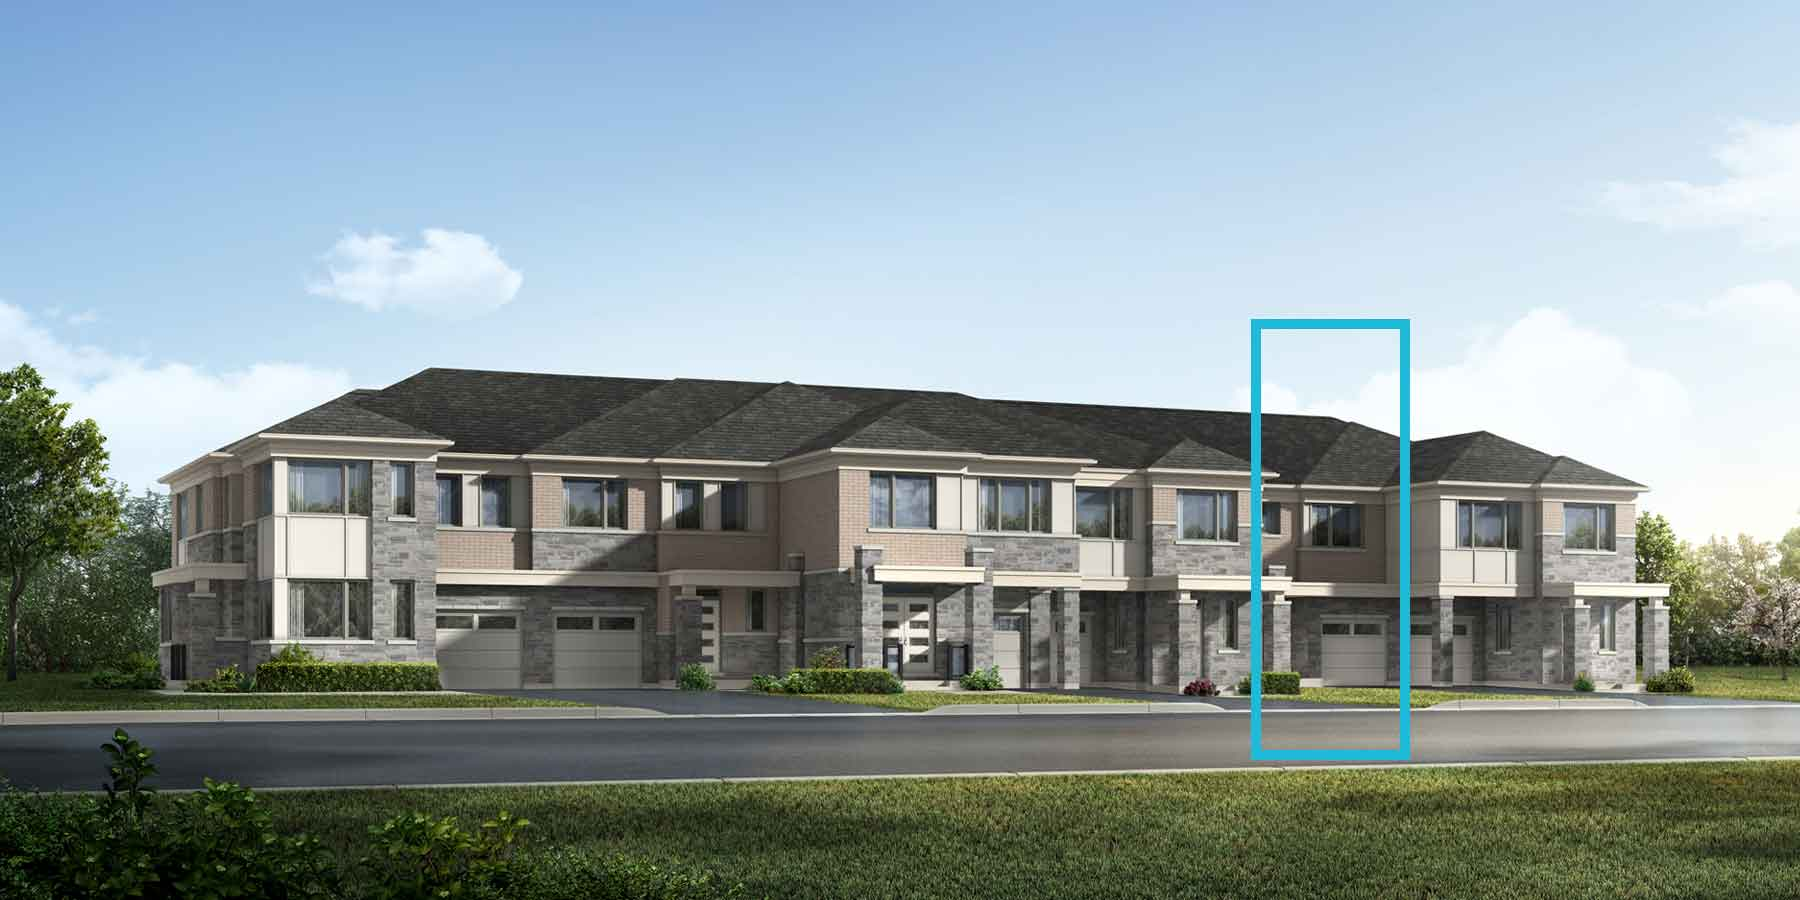 Jade Plan modern_springwater_jade_main at Springwater in Markham Ontario by Mattamy Homes